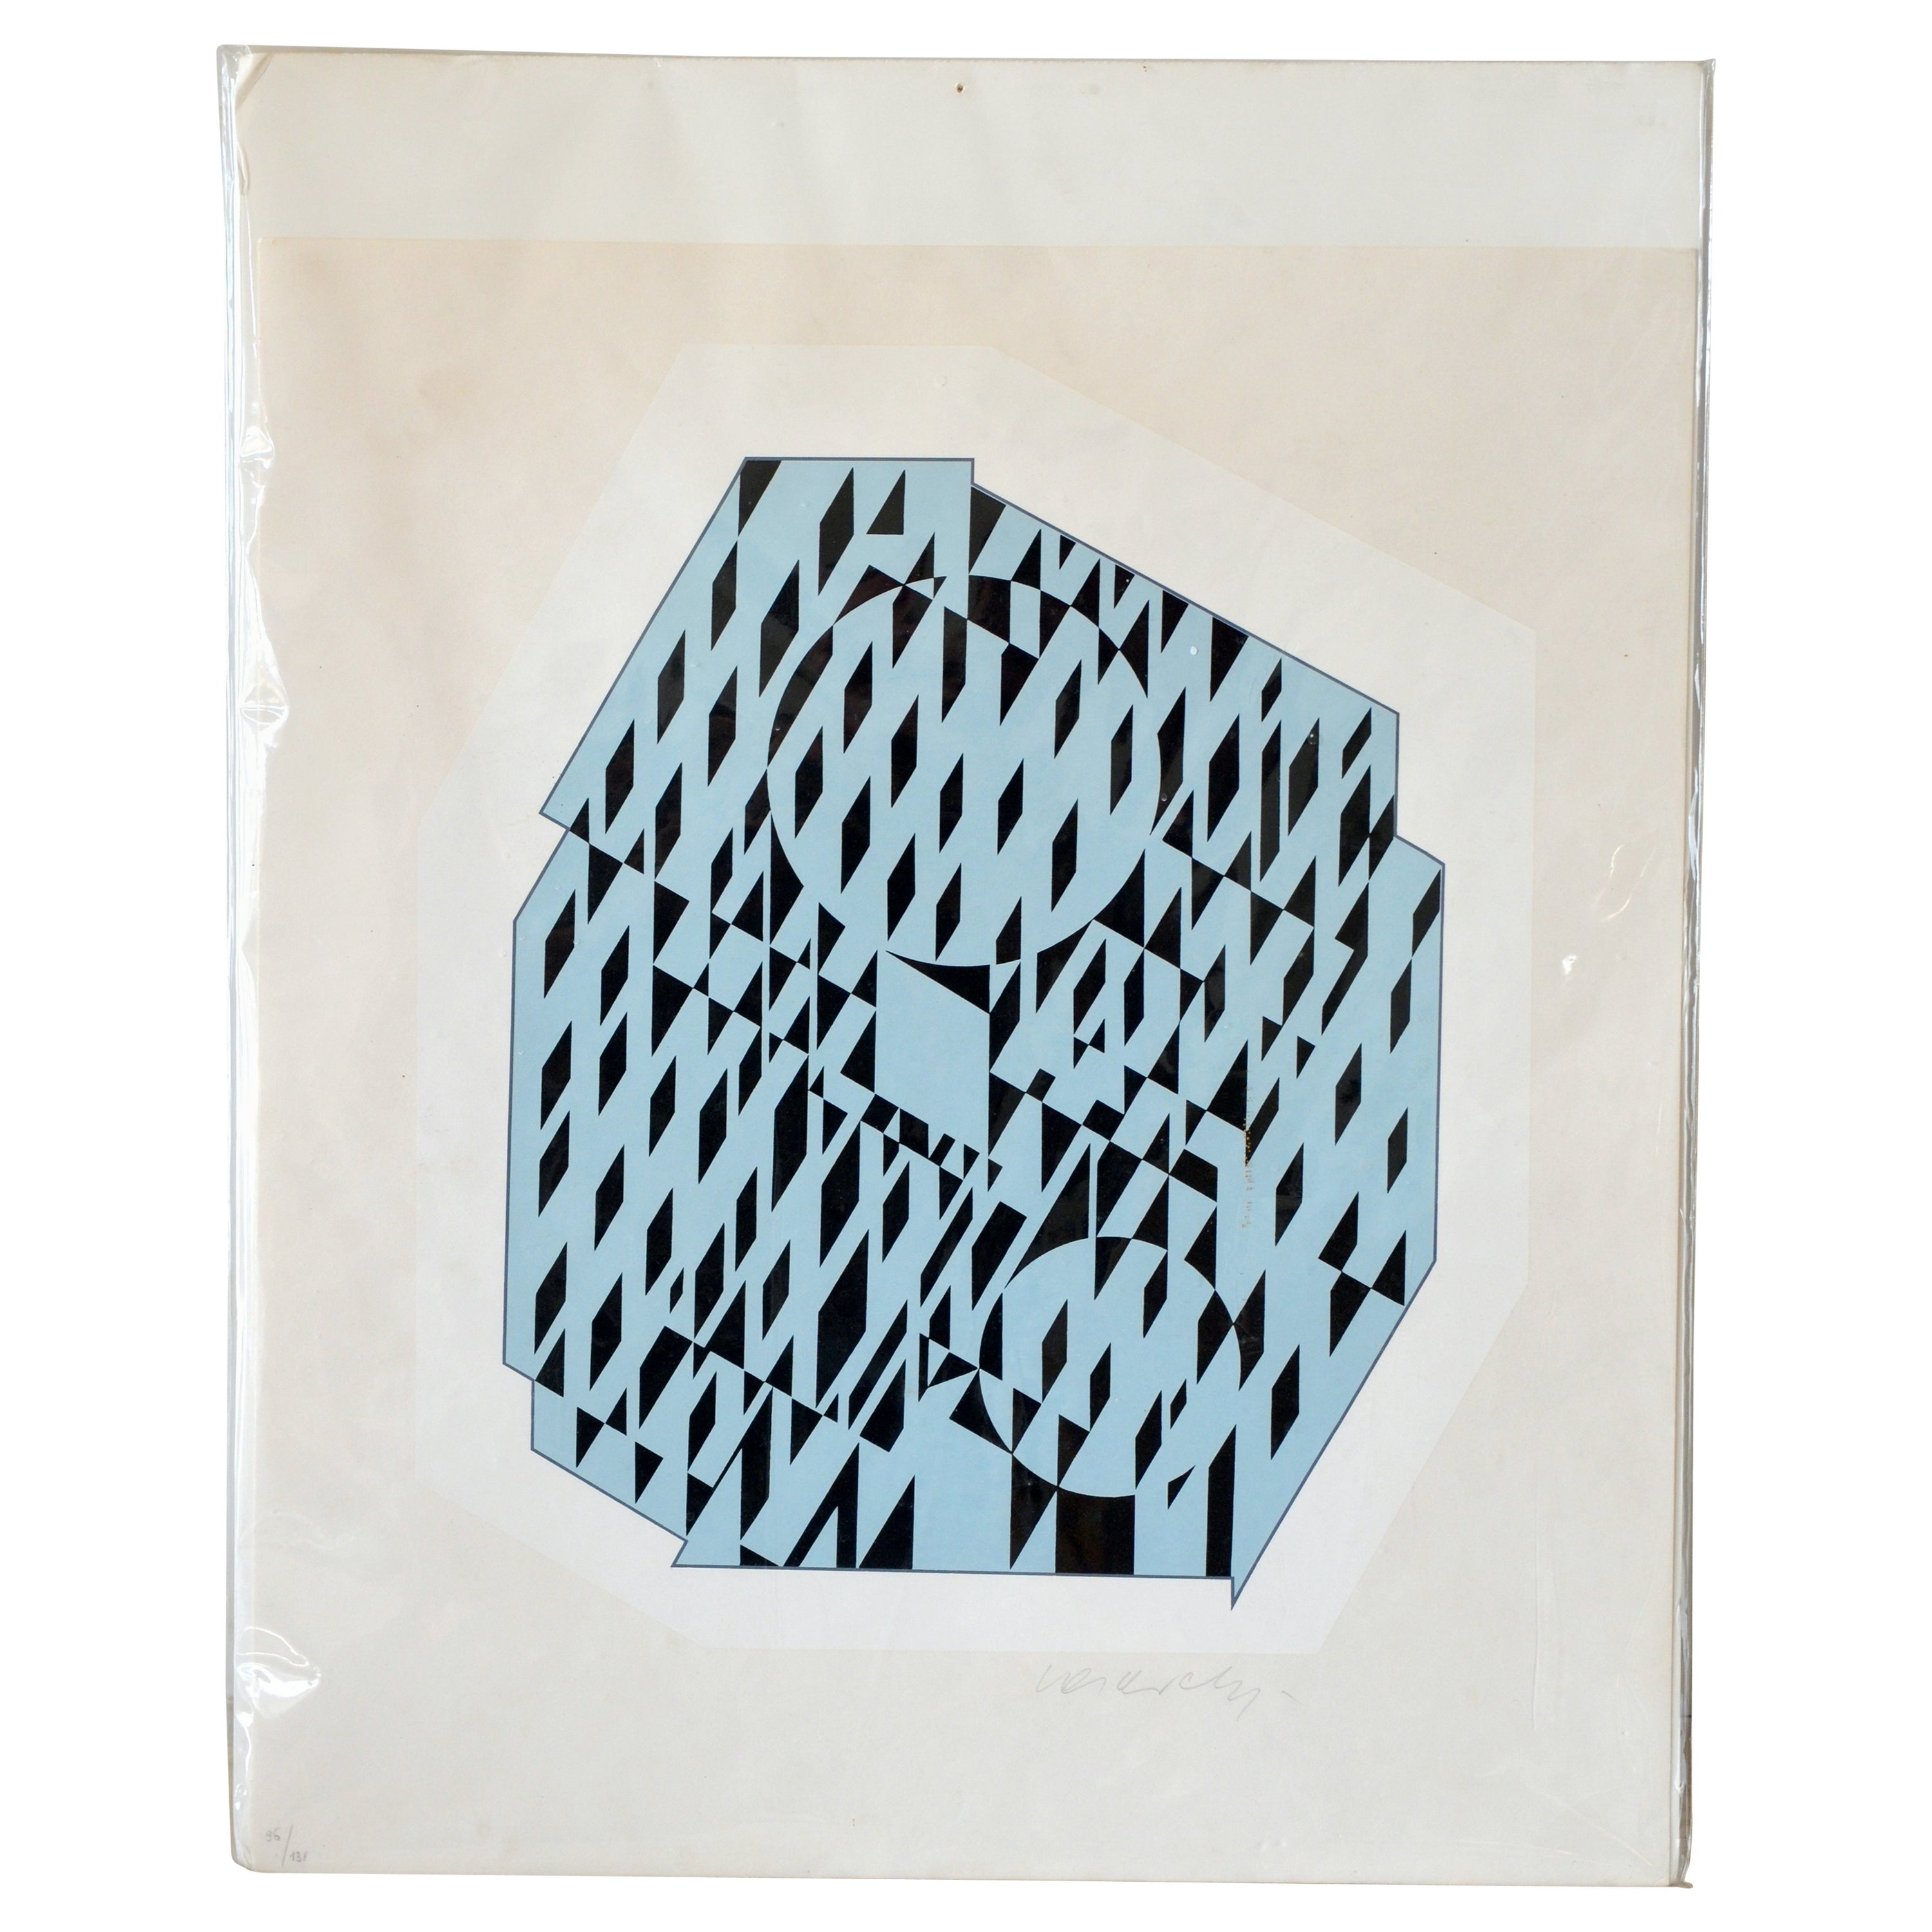 Nethe, Signed and Numbered Silkscreen Print by Victor Vasarely